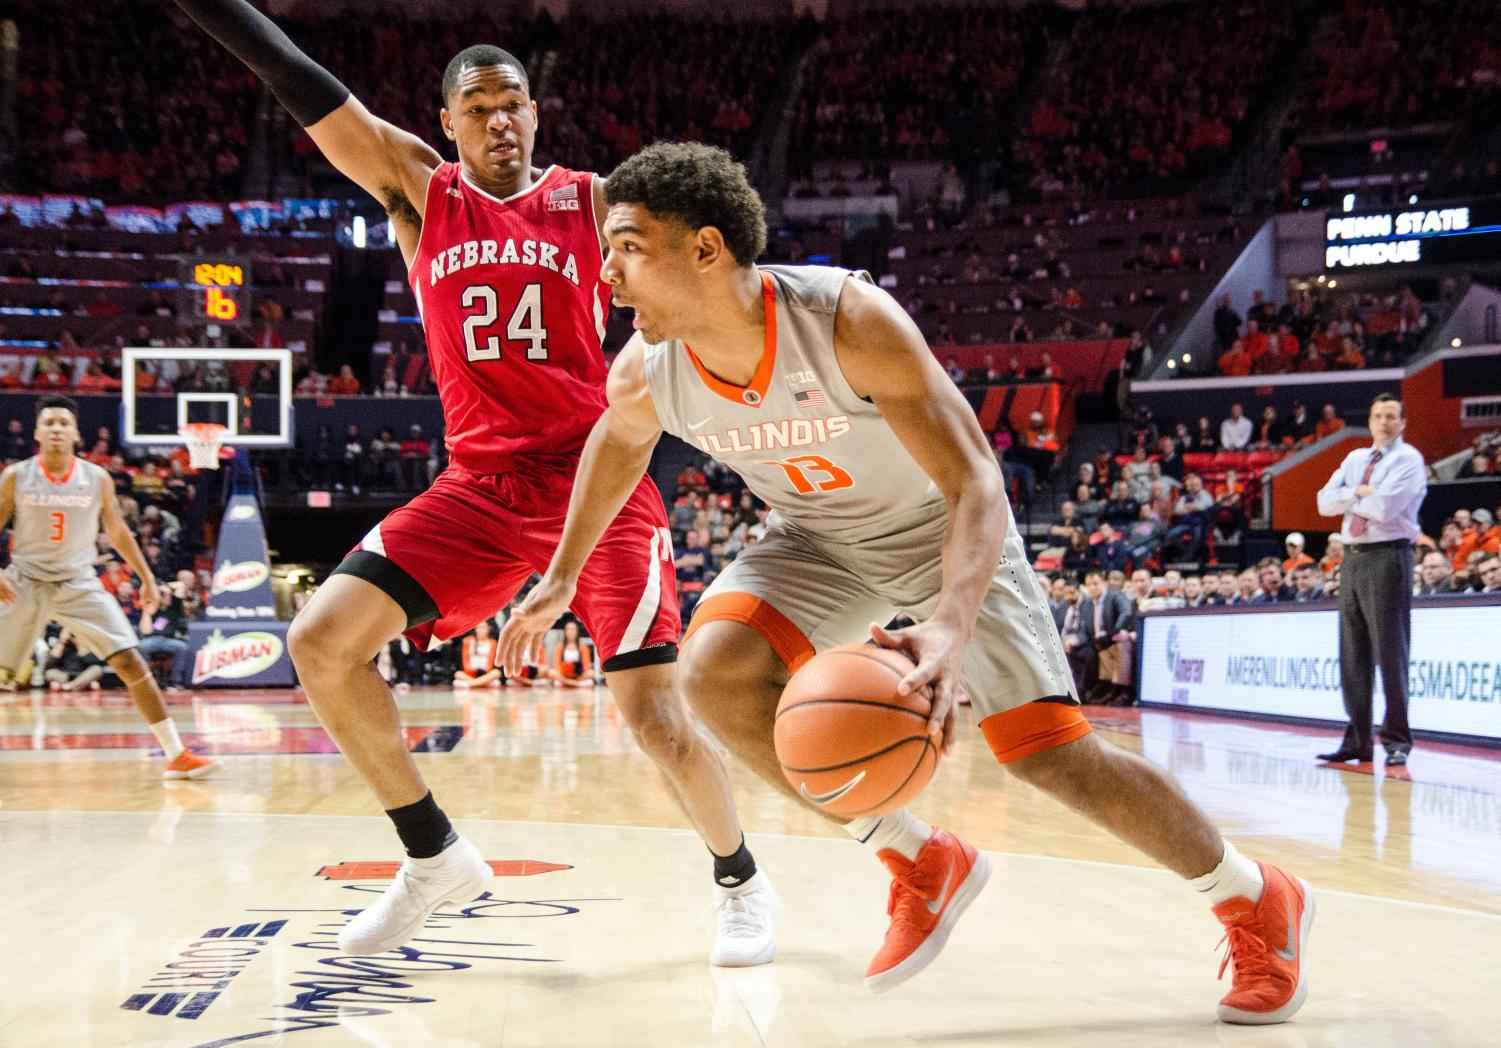 Former Illinois Mr. Basketball Mark Smith to transfer